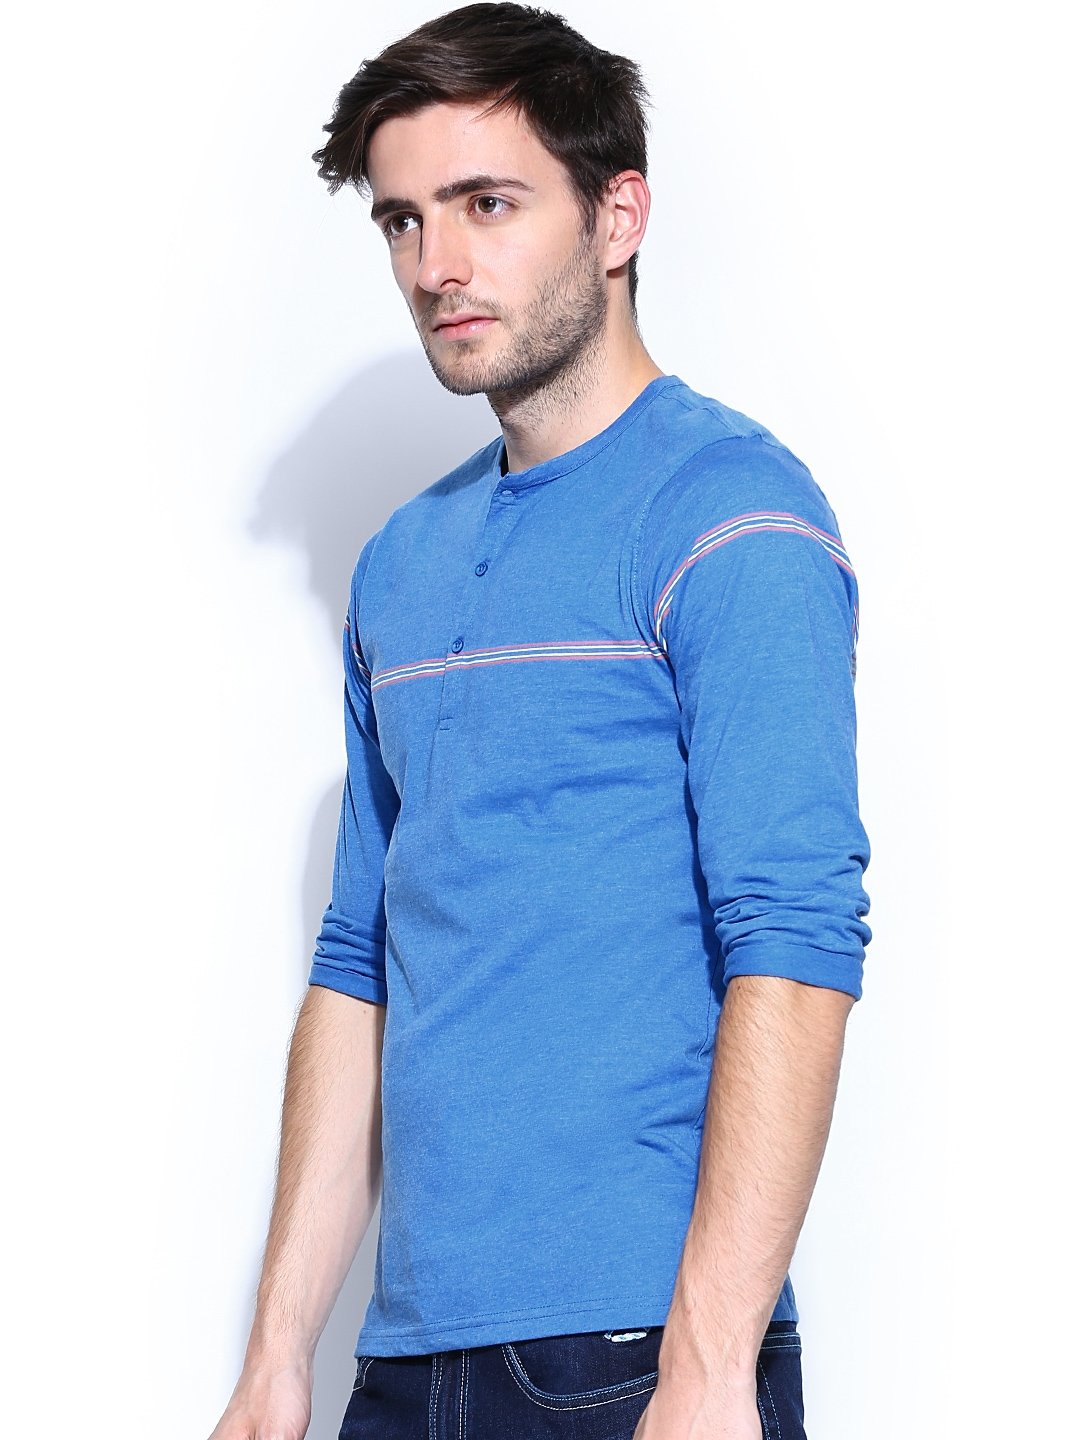 aae20c6be6d0 Buy FREECULTR Men Blue & White Striped Henley T Shirt - Tshirts for ...